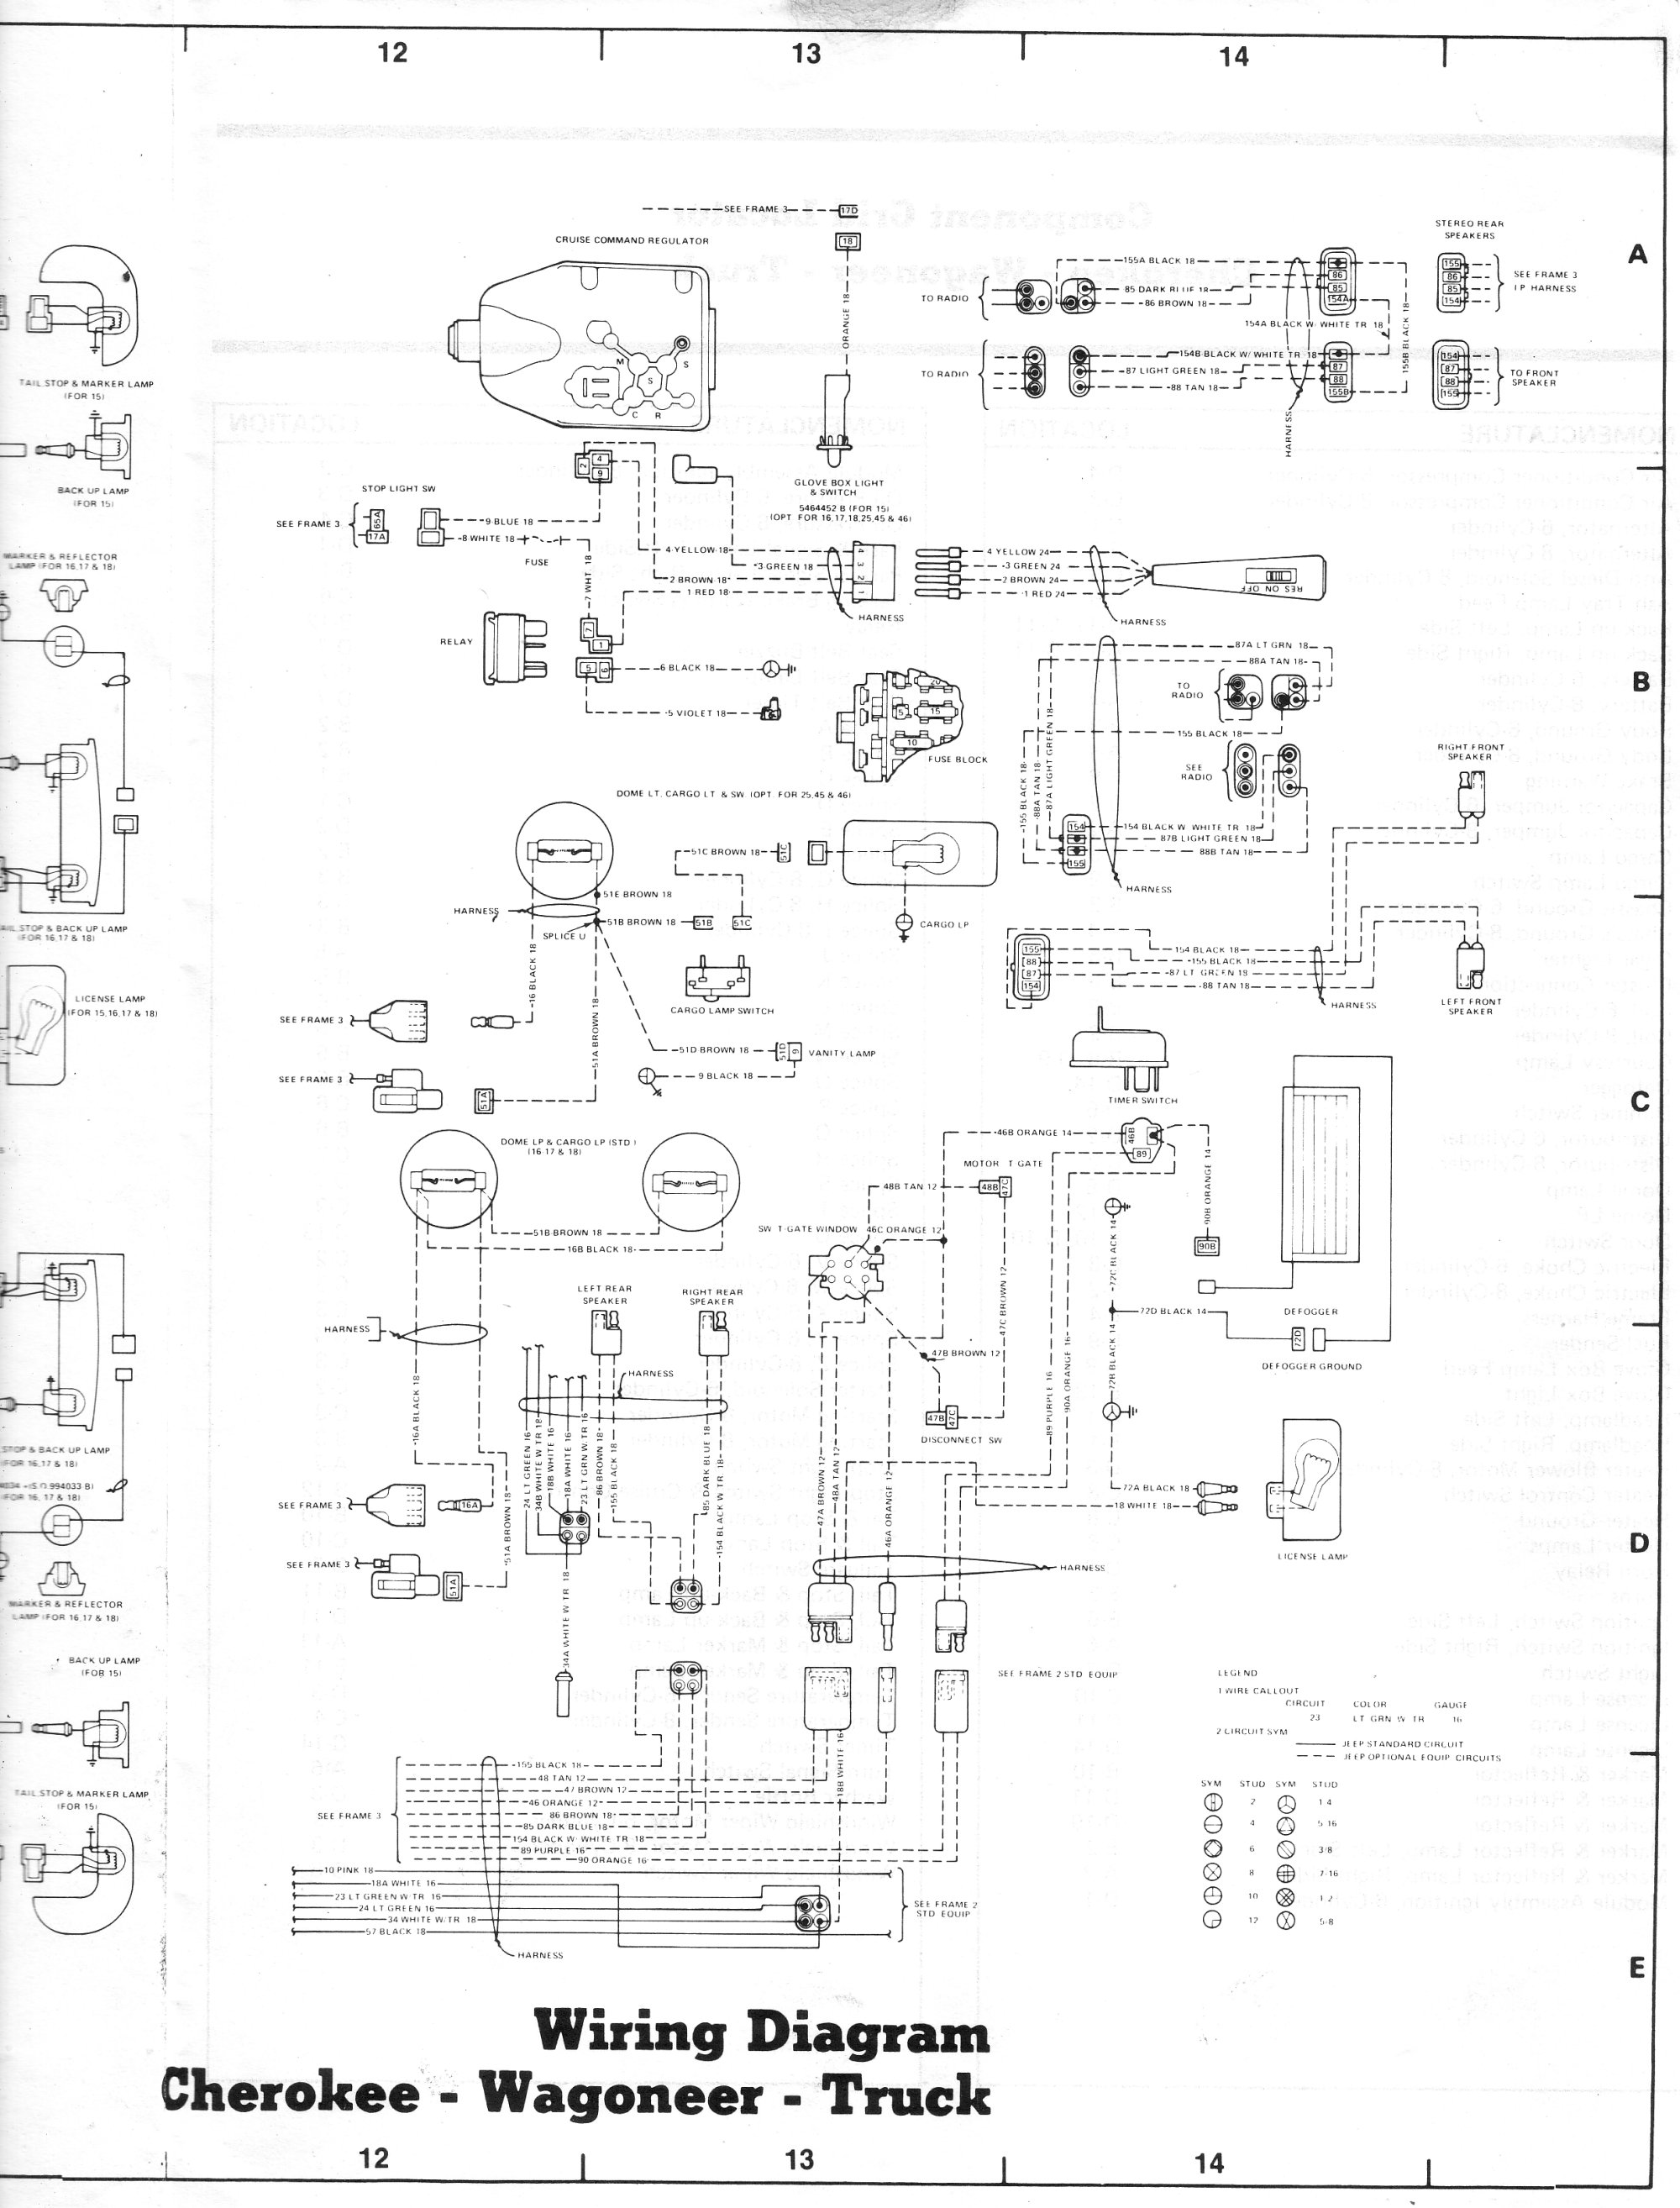 DOWNLOAD [DIAGRAM] Jeep J10 Wiring Diagrams HD Version